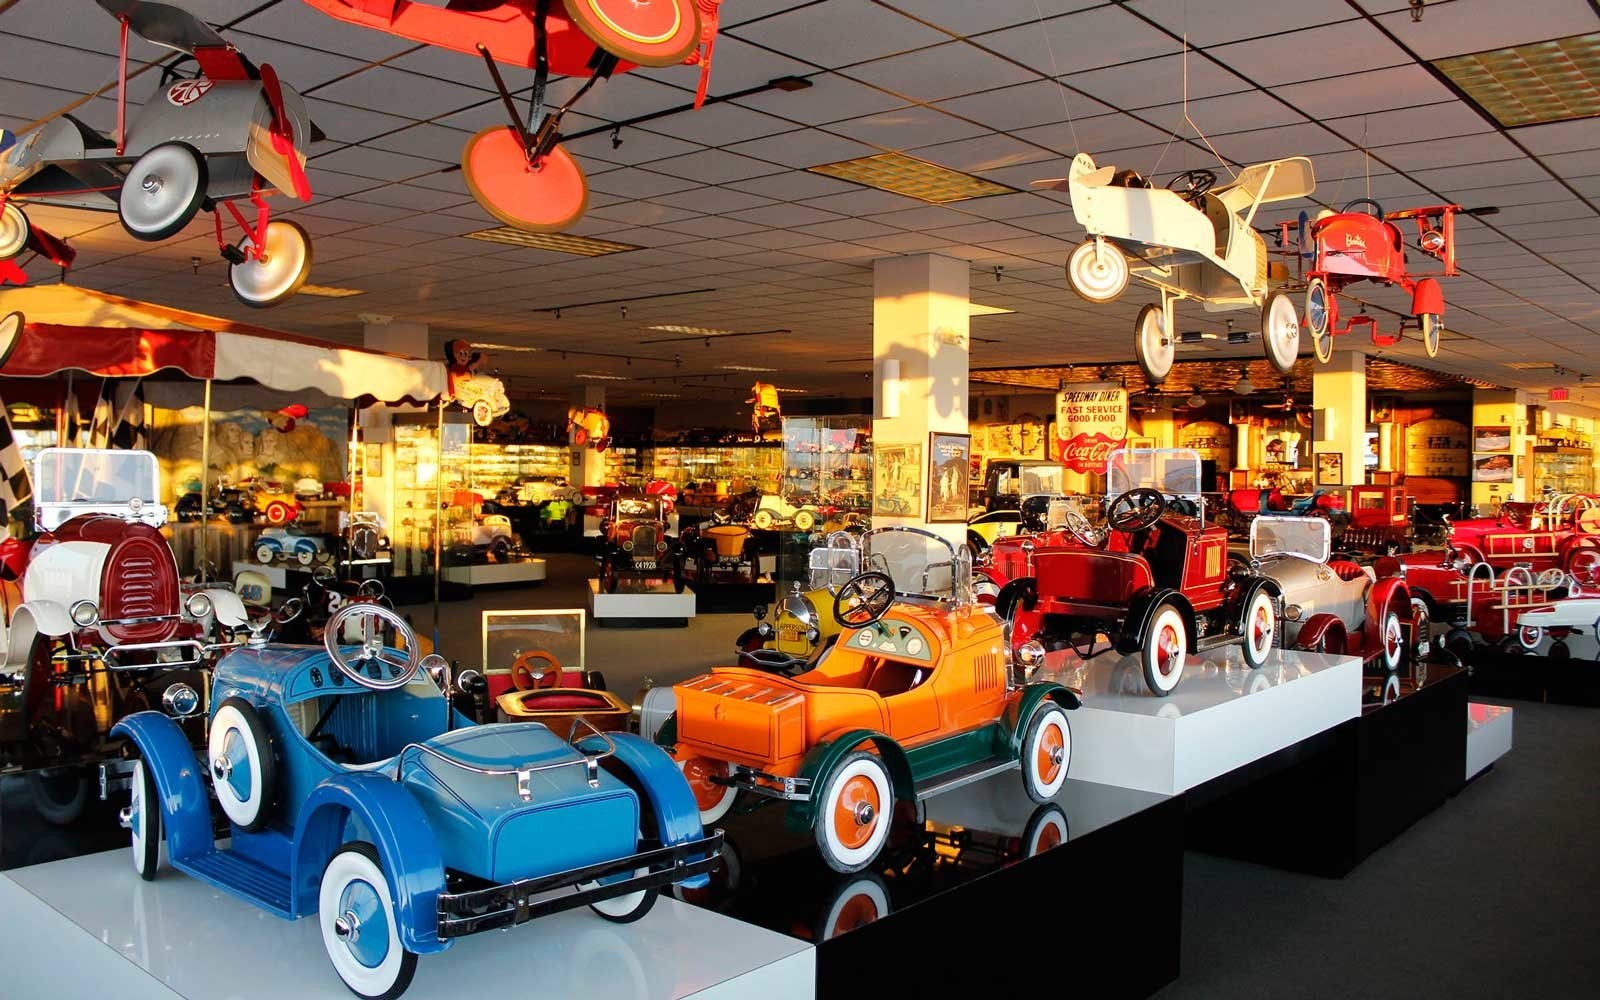 3rd Floor Pedal Cars, Museum of American Speed